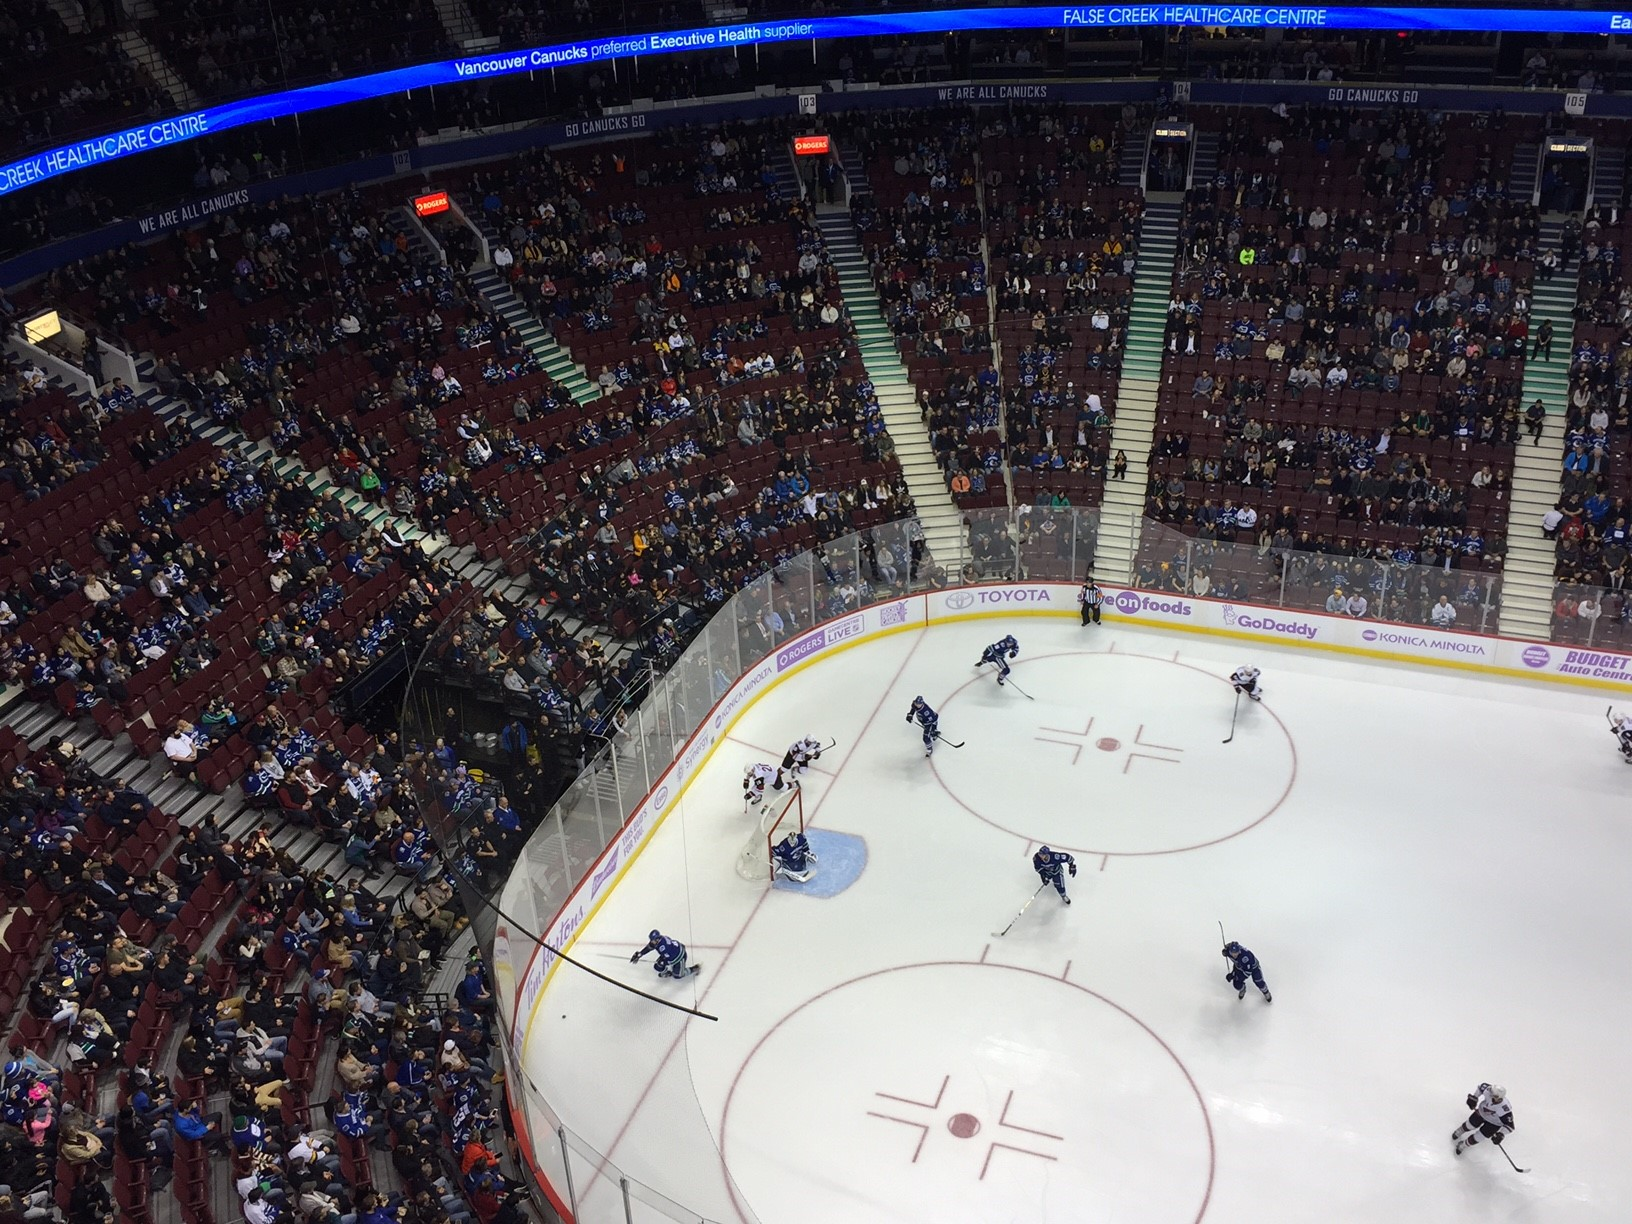 Brokers claim Canucks ticket sales up compared to last season